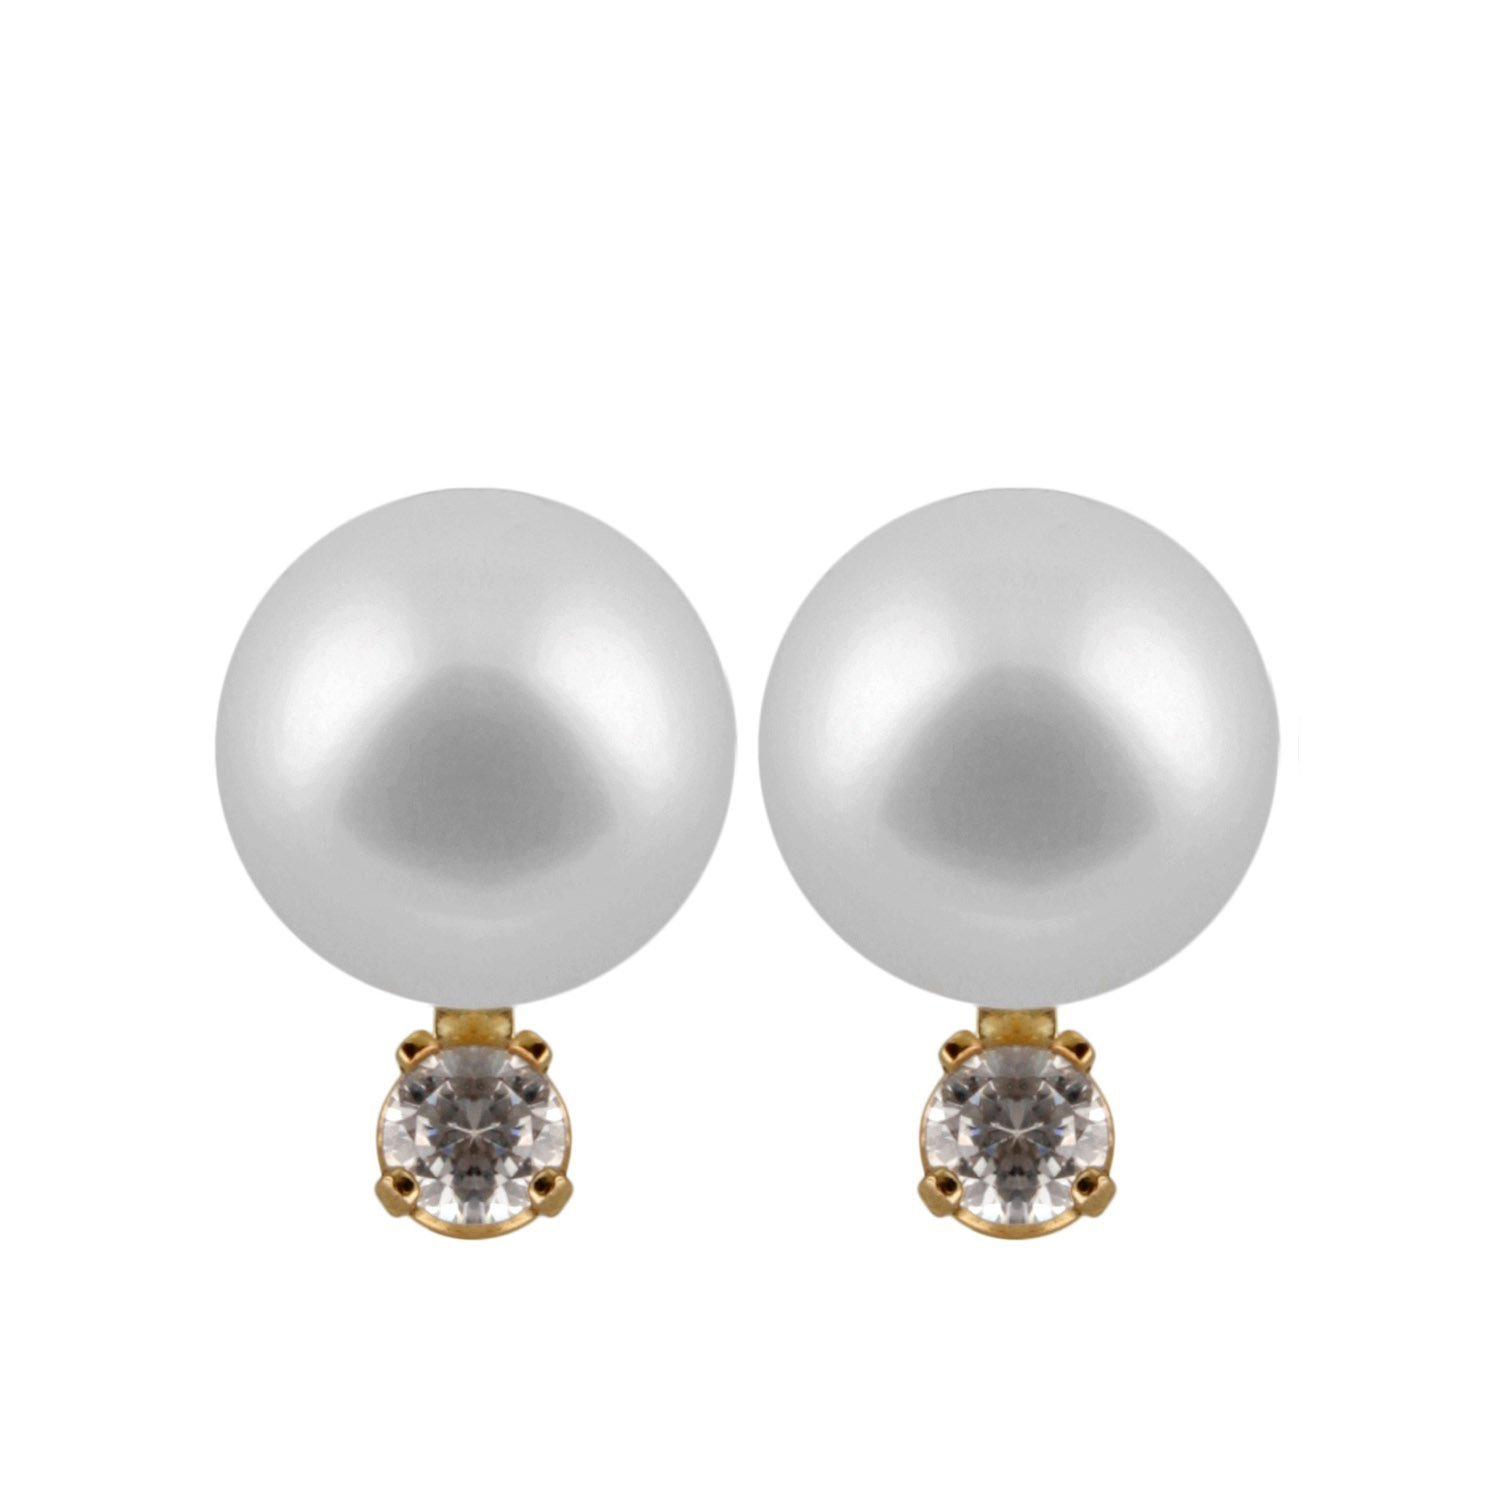 14K Yellow Gold Handpicked AAA Quality Round Genuine White Akoya Japanese Cultured Saltwater Pearl Stud Earrings Set with Diamonds for Women